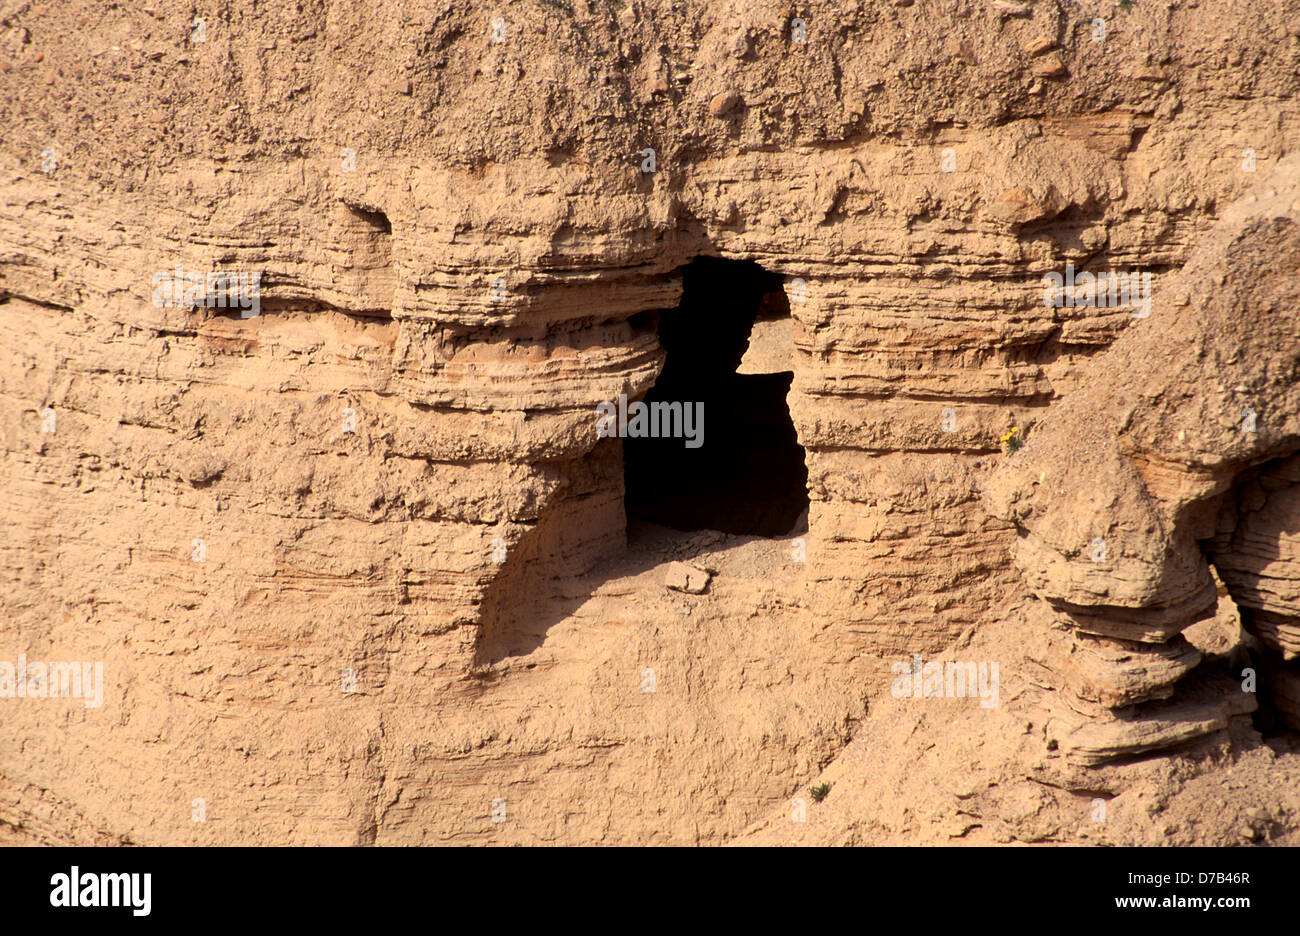 the discovery of the dead sea scrolls The story of the dead sea scrolls the story of the dead sea scrolls begins in 1947, when – so the tale goes – a bedouin shepherd found a collection of apparently ancient scrolls in a cave above khirbet qumran, near the north end of the dead sea.